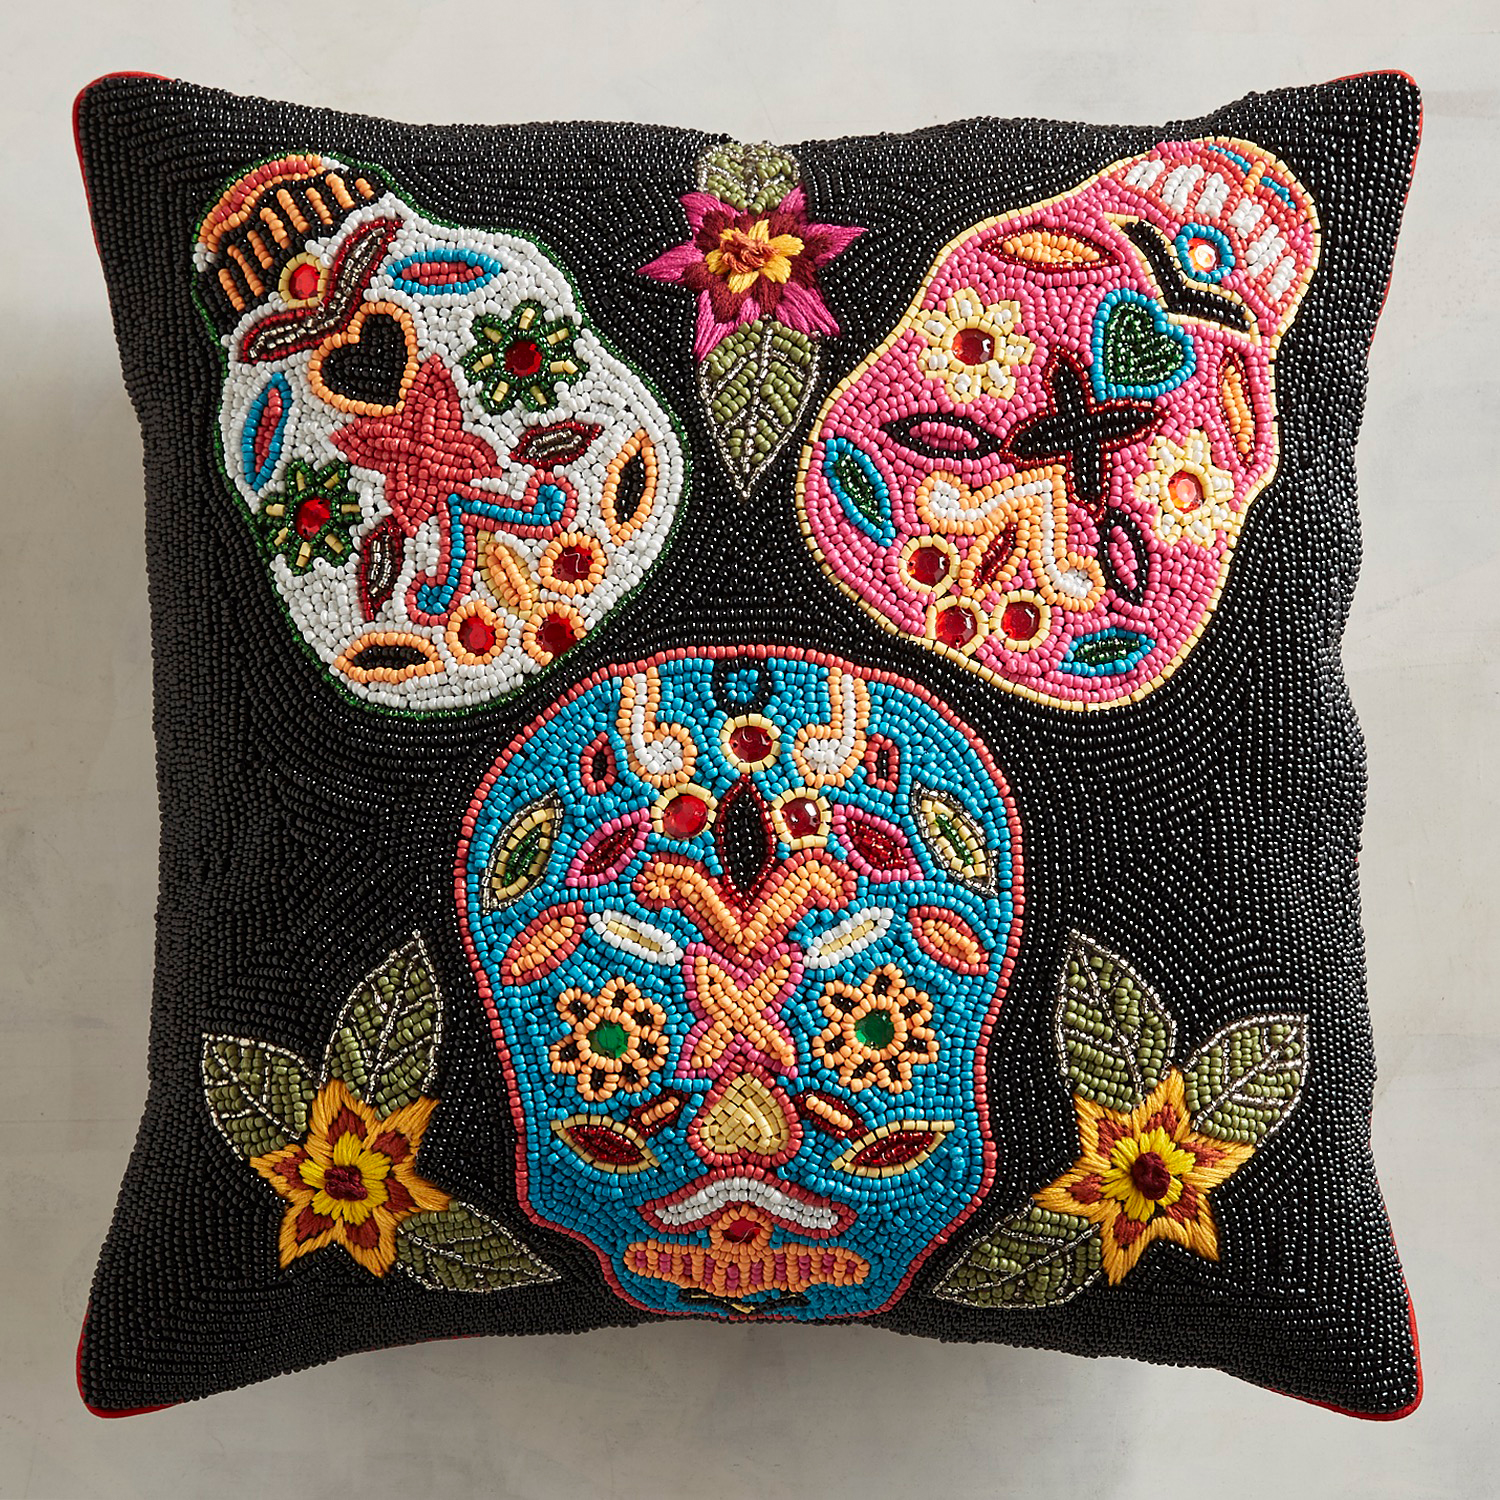 Beaded Day of the Dead Pillow